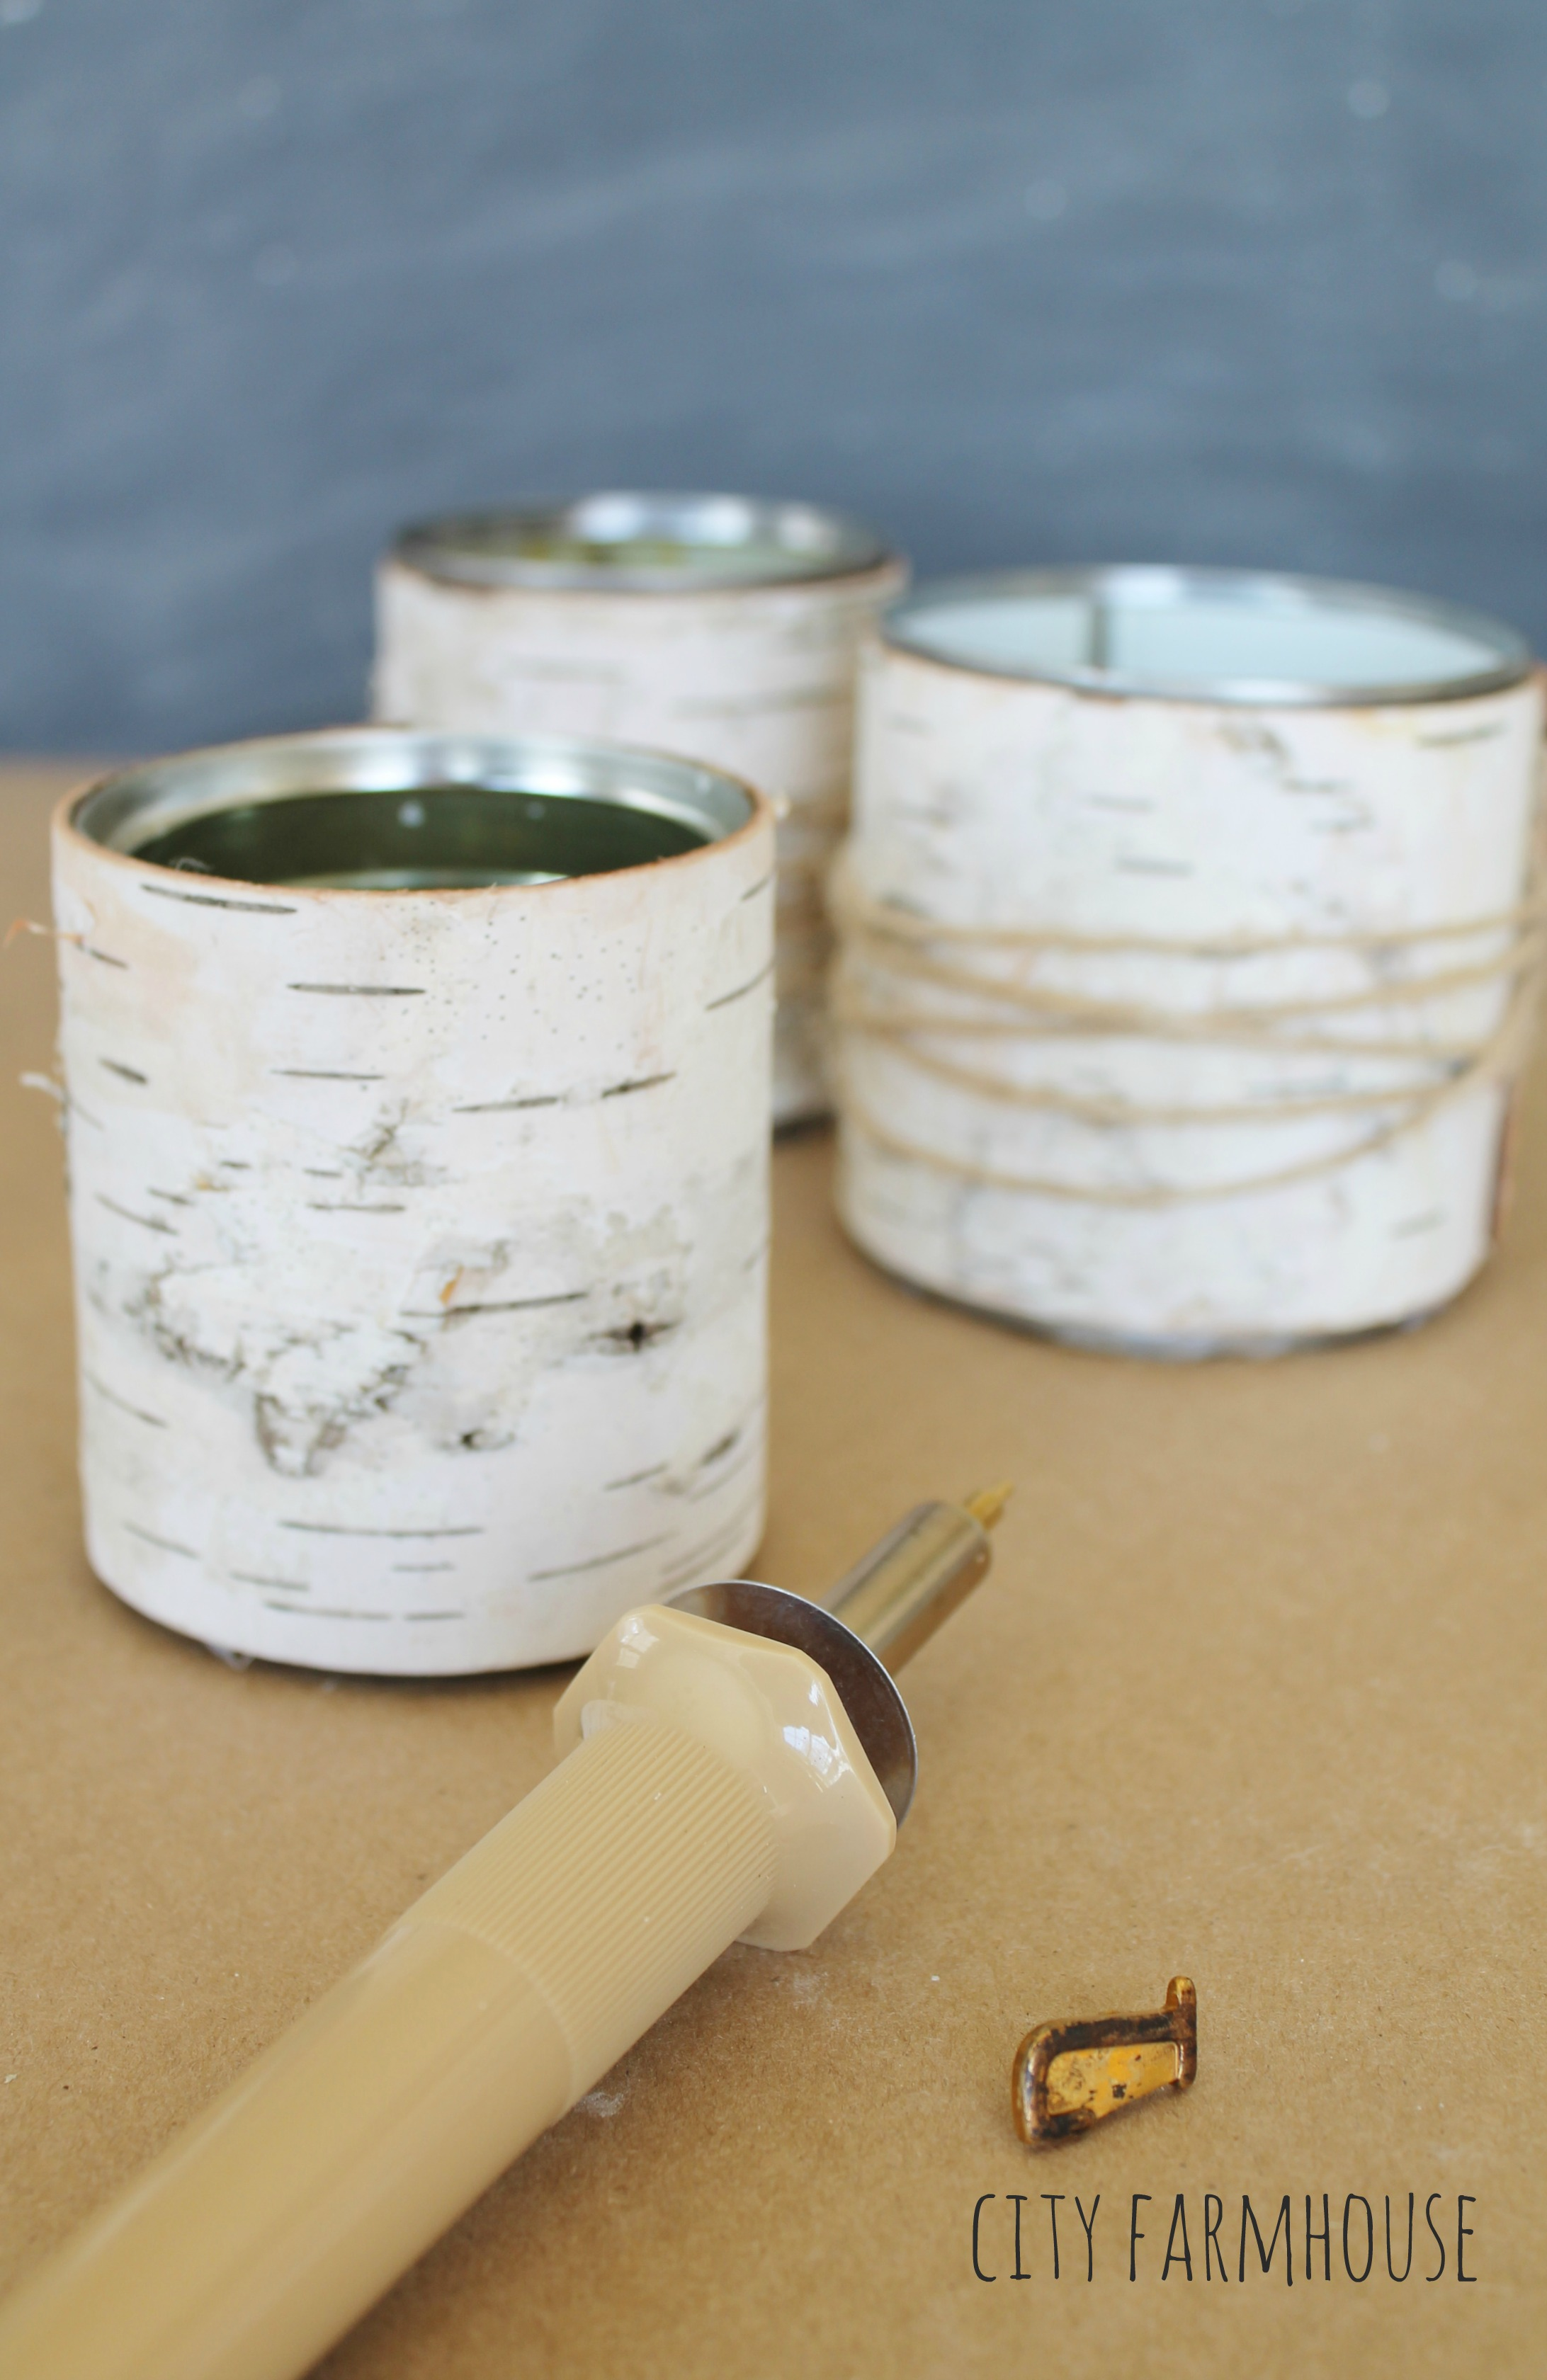 Diy birch vases some exciting bhg news city farmhouse diy birch flower vases perfect for wedding or special event burn heart with initals reviewsmspy